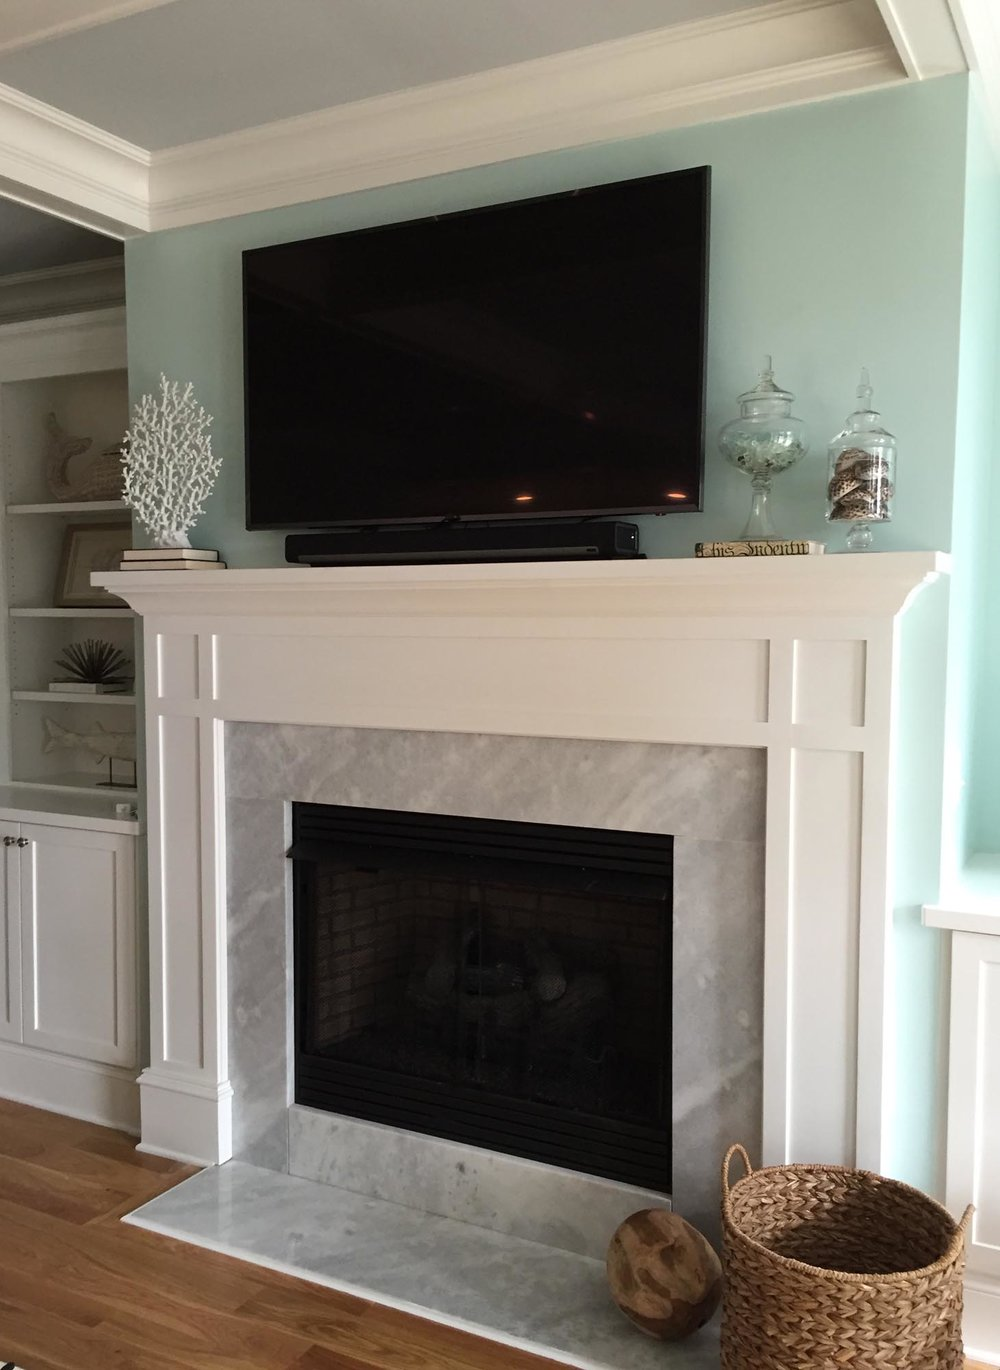 Marble grey and white fireplace with sea glass jar on mantle piece